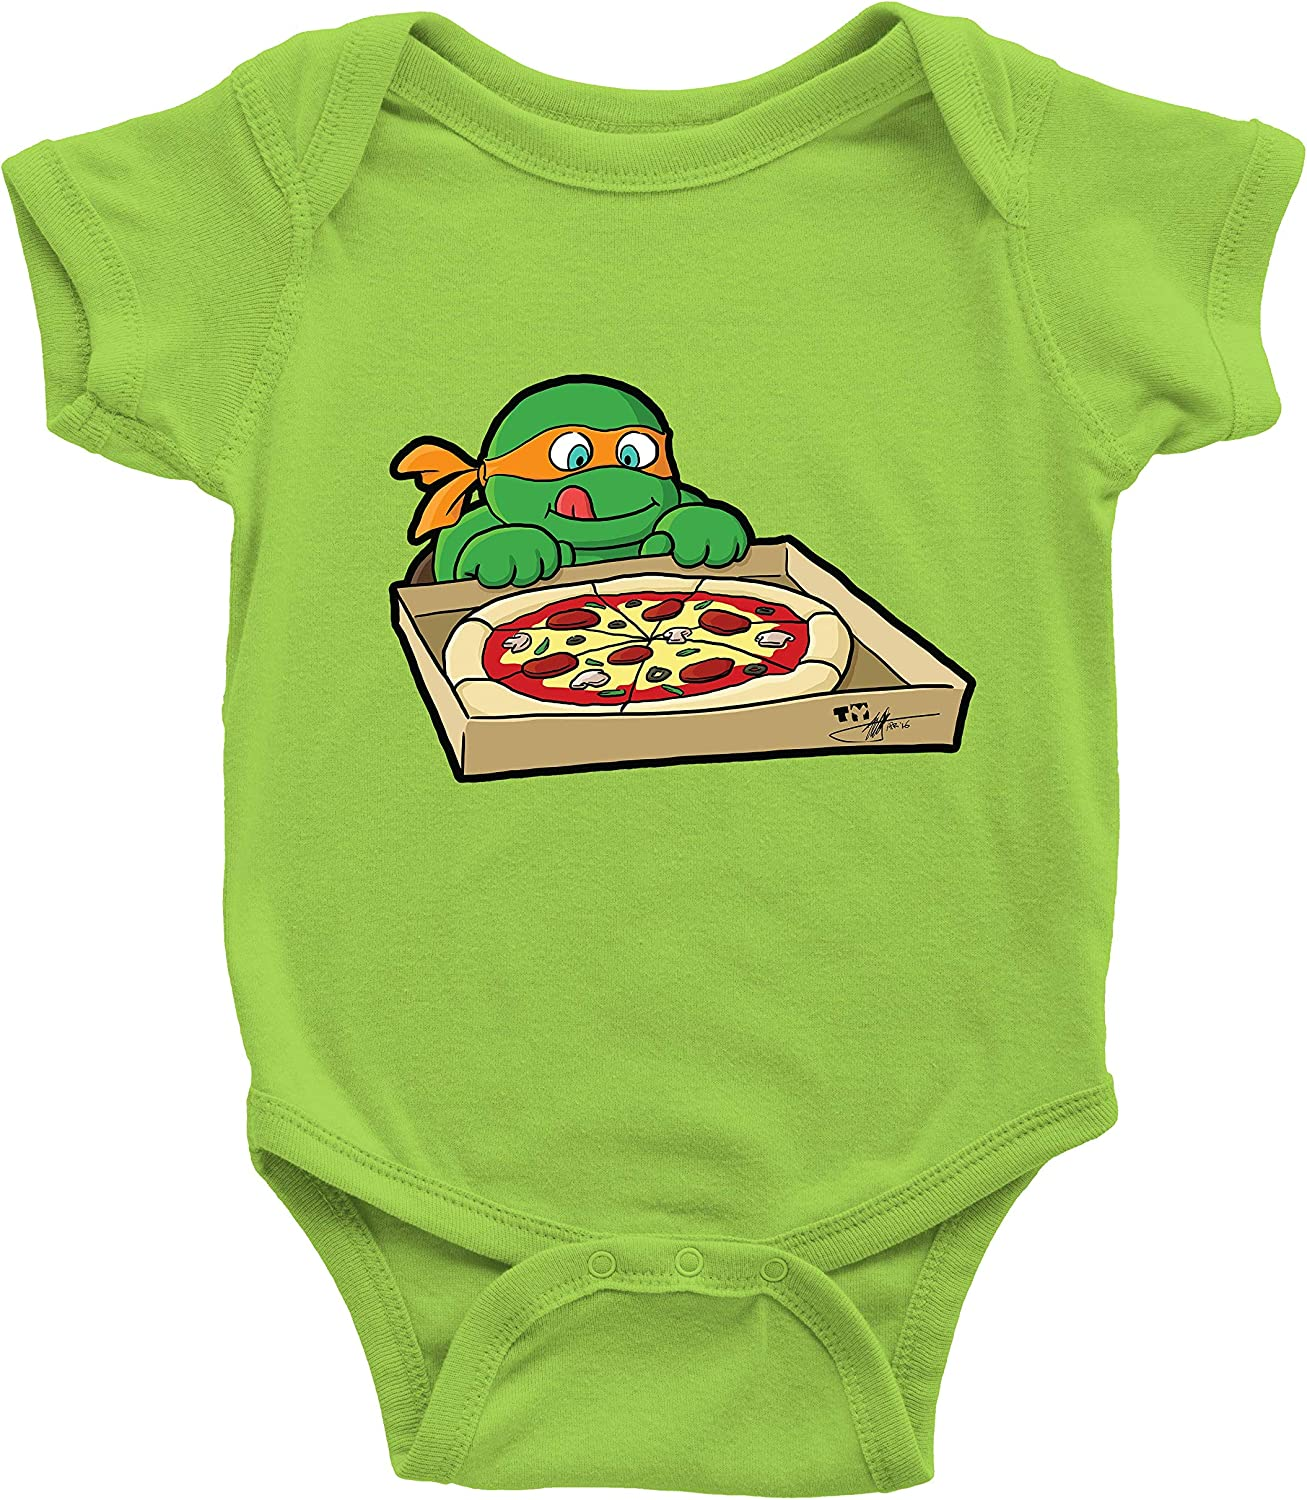 Hungry Ninja Infant Baby Clothes Bodysuits Jumpsuit Romper Babysuit Shower Gift Cute Turtles Pizza